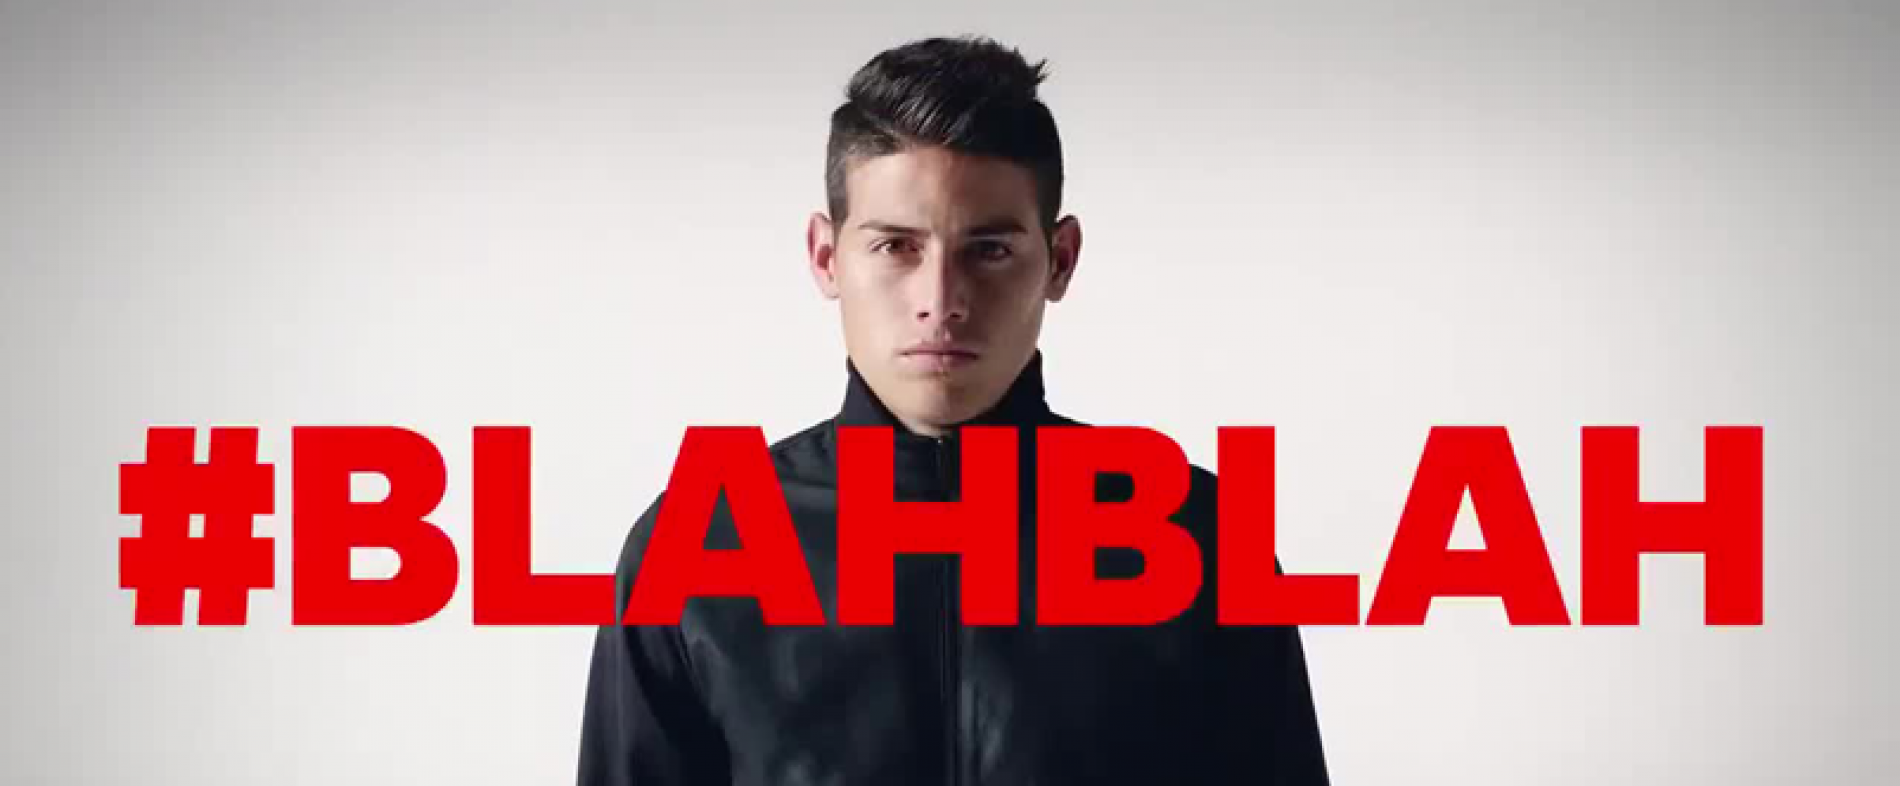 La nouvelle campagne publicitaire adidas There Will Be Haters